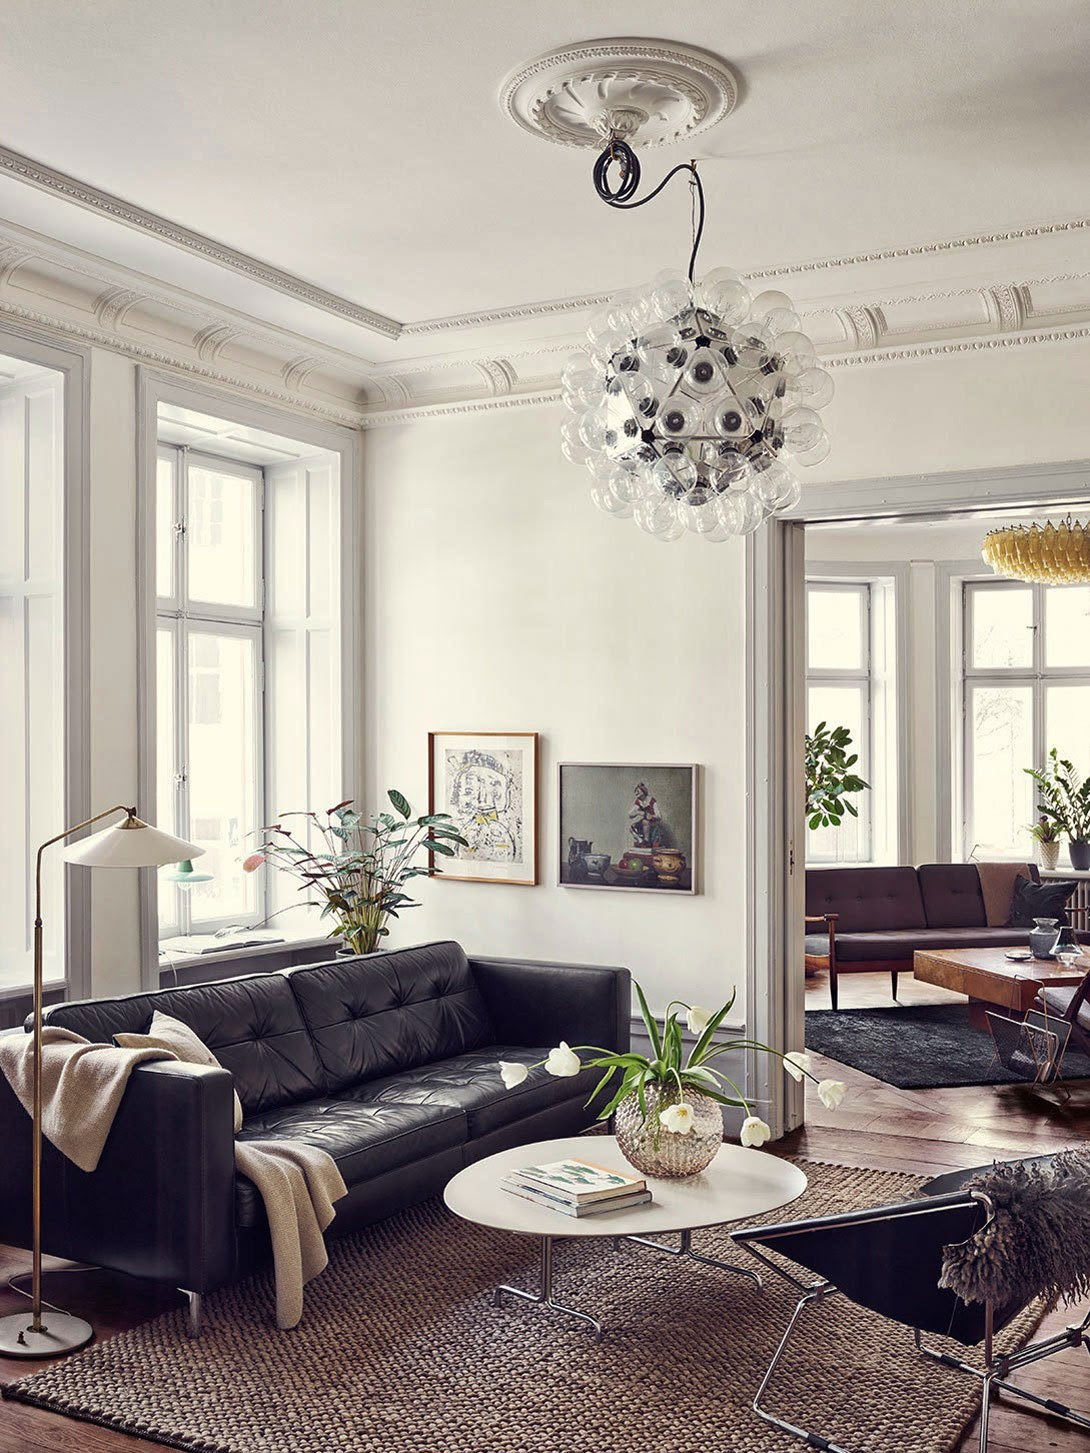 5 Black Leather Sofas Or We Found What Your Living Room Was